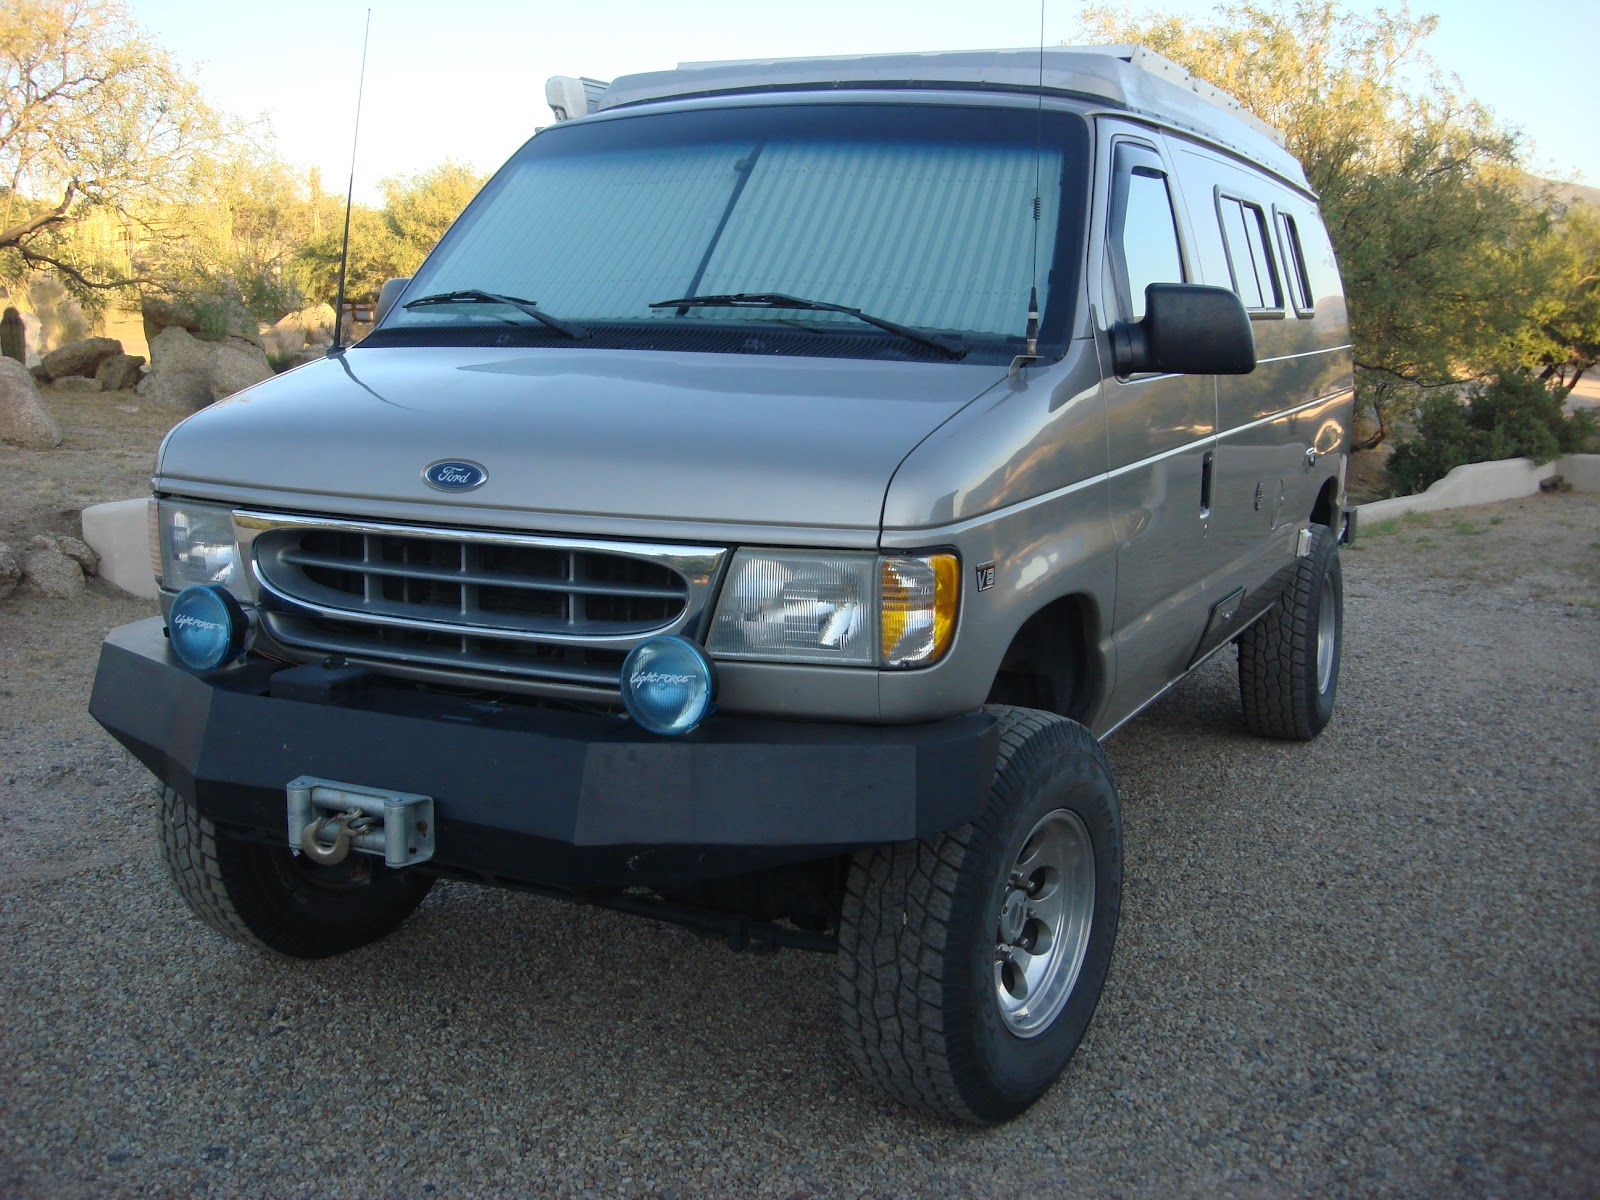 Ford 4x4 Sportsmobile For Sale